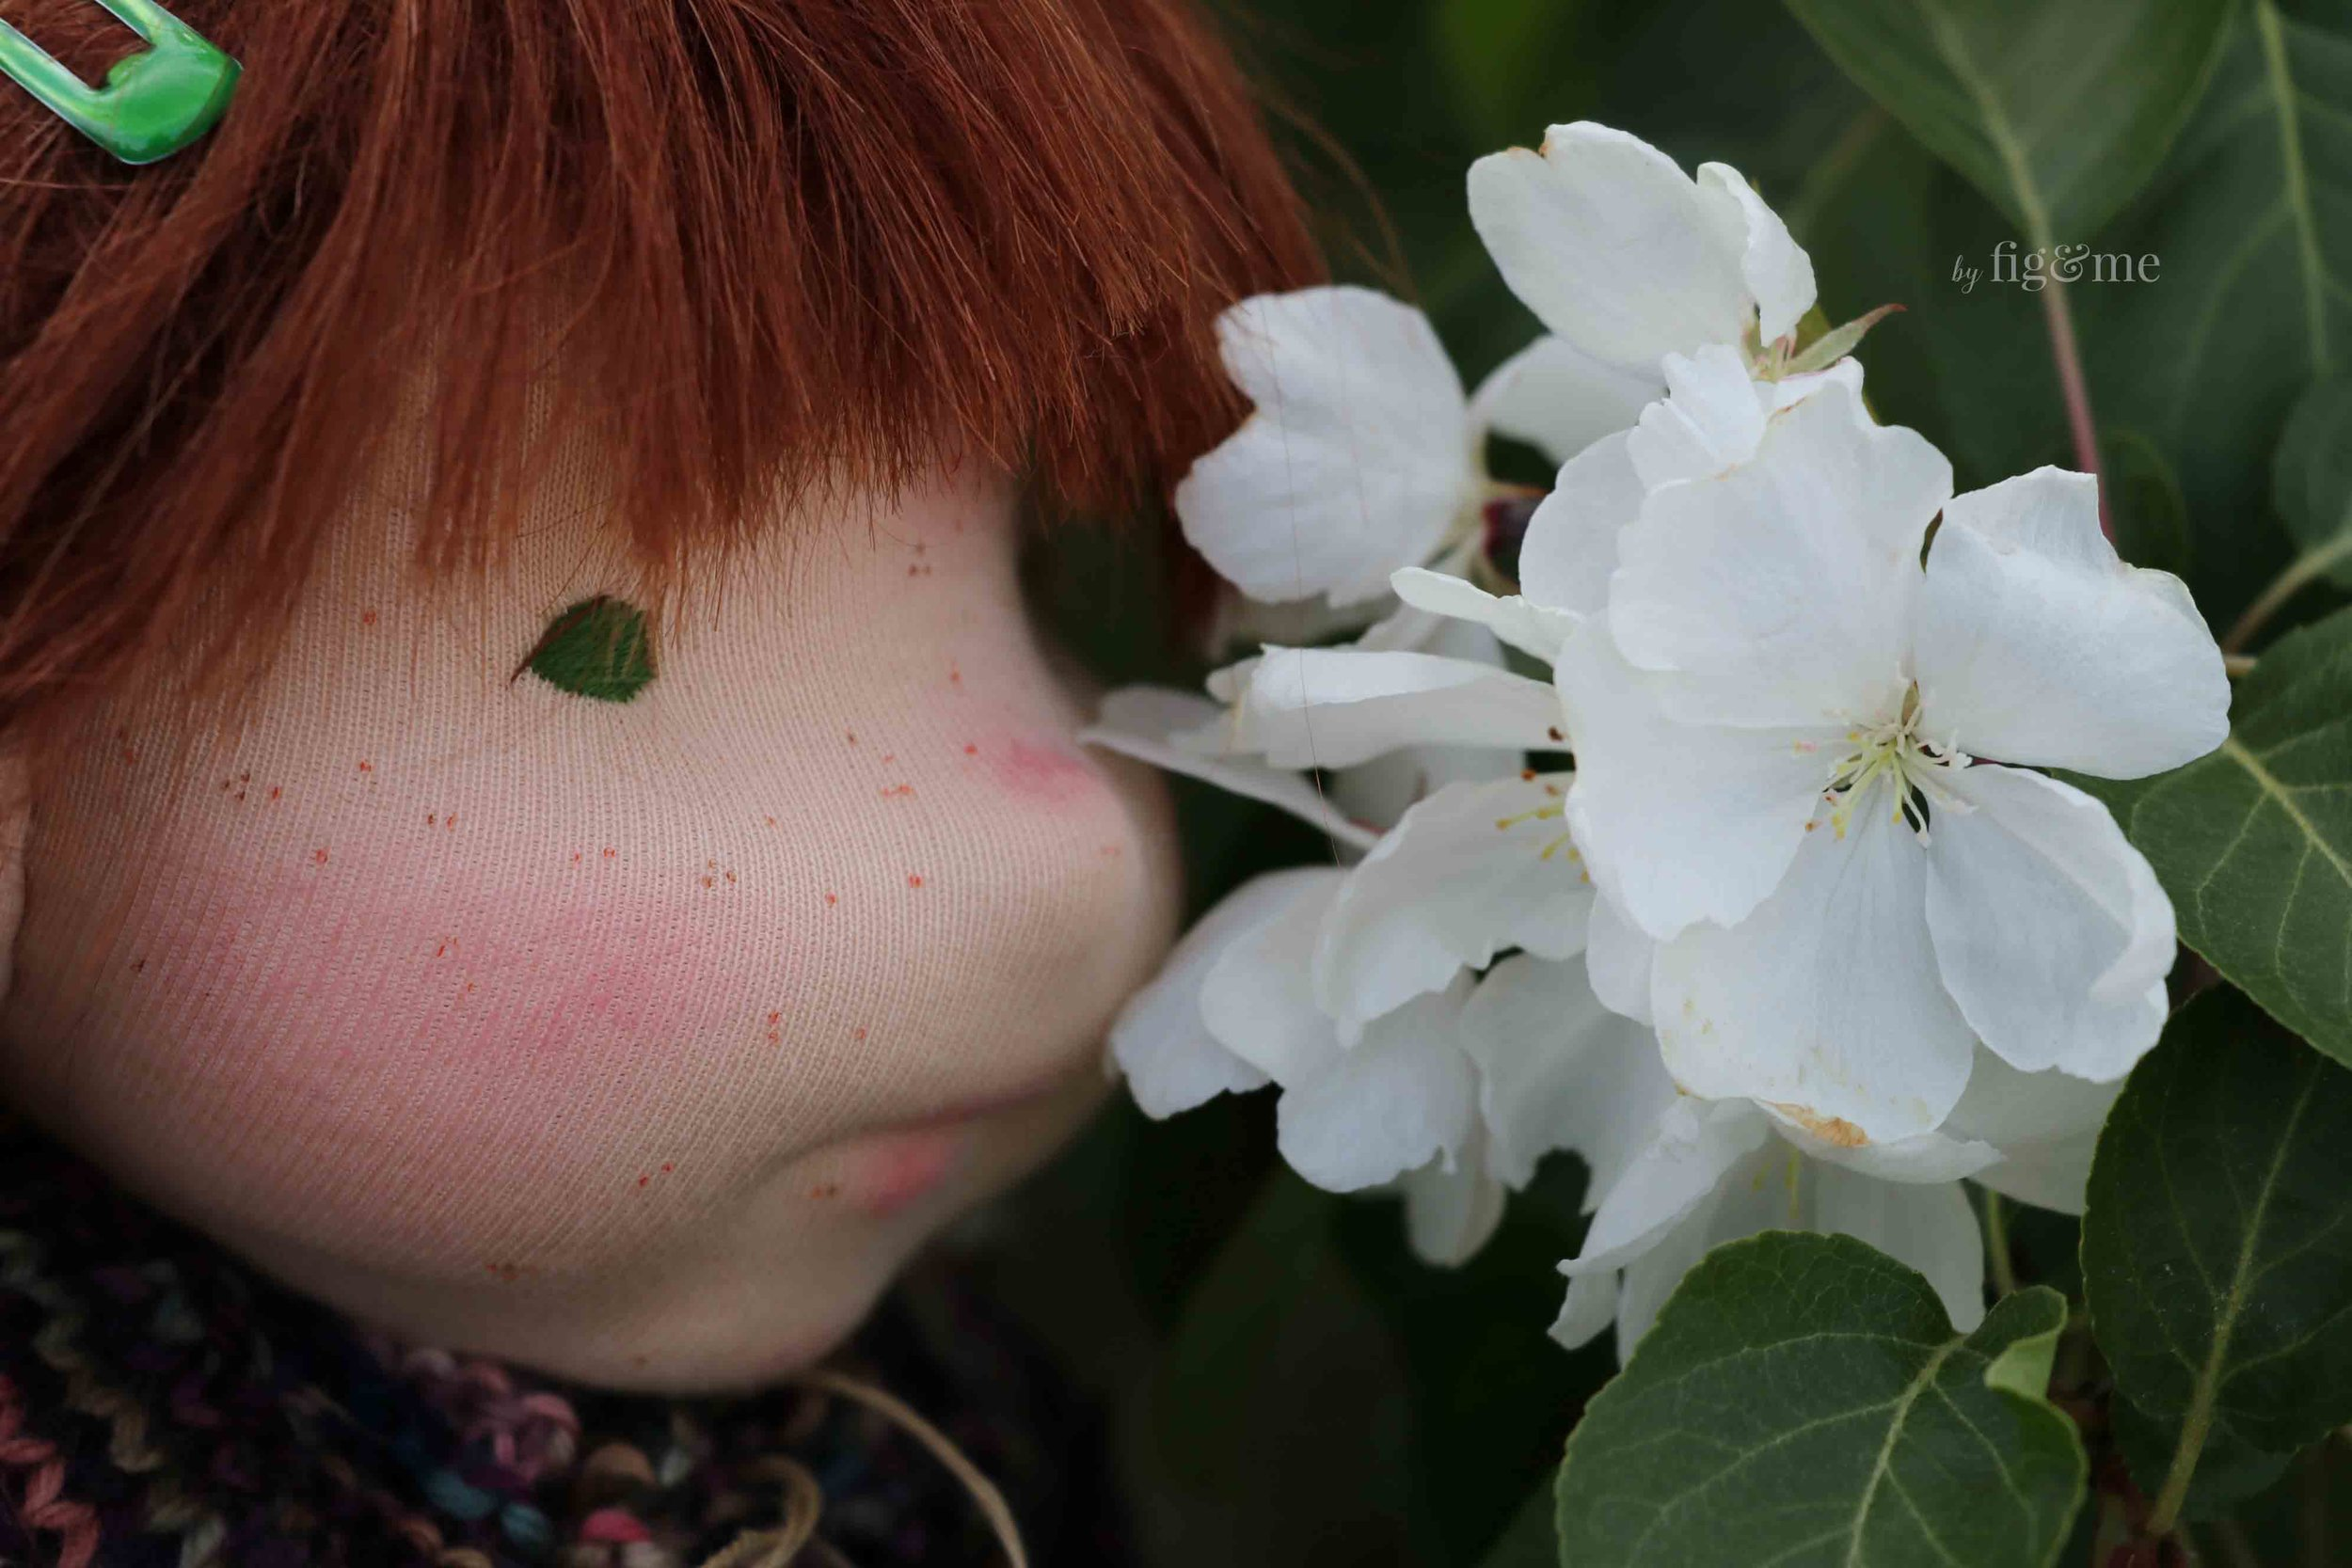 Bernadette smelling the crabapple flowers, by fig and me.